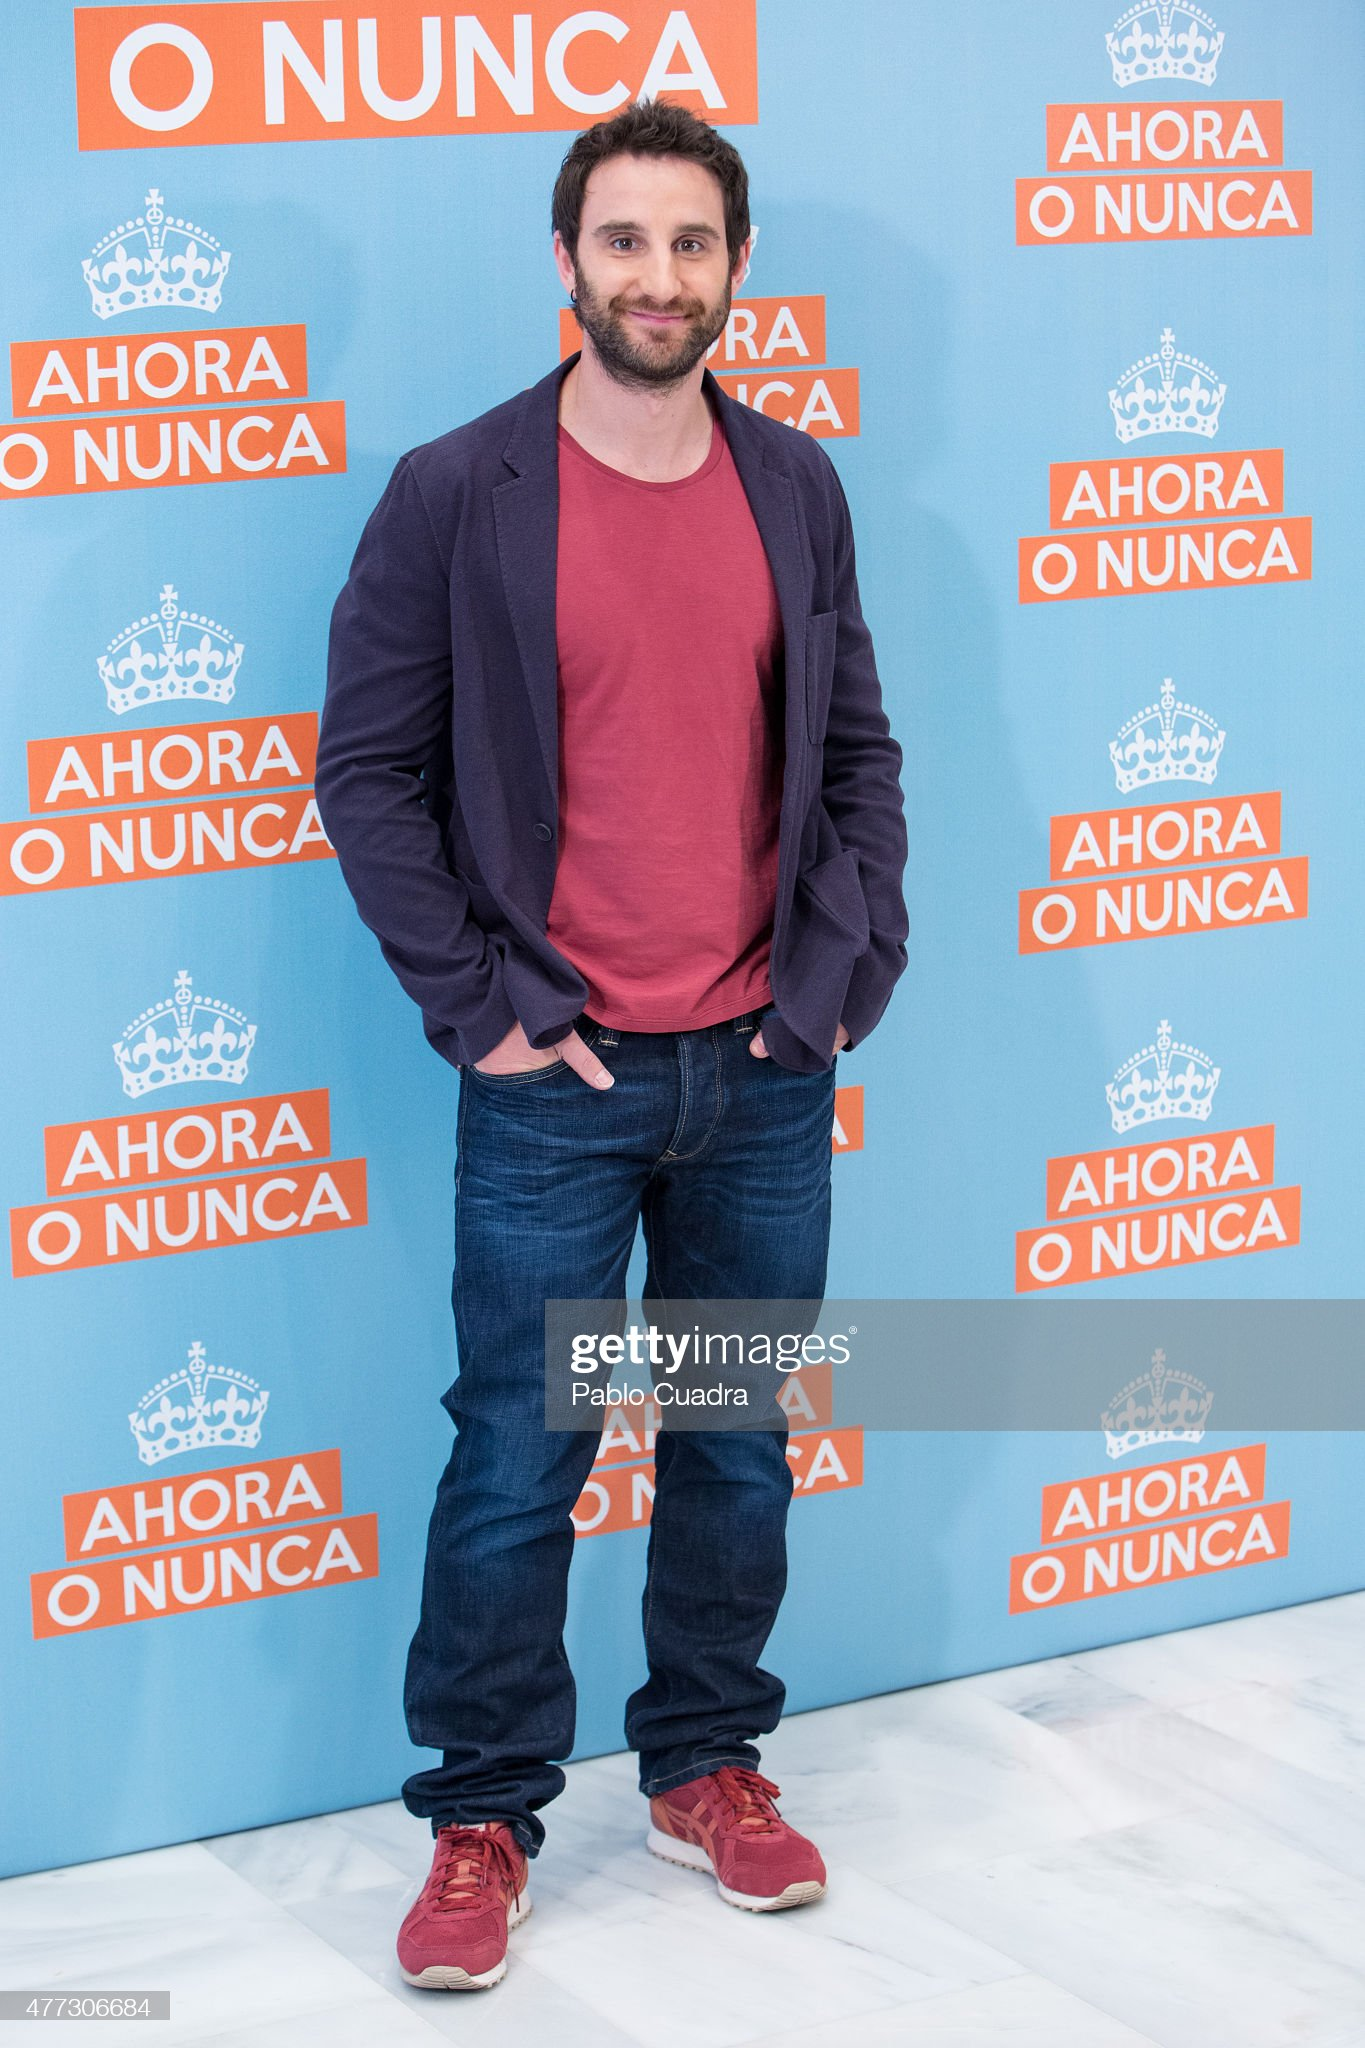 ¿Cuánto mide Dani Rovira? Spanish-actor-dani-rovira-attends-the-ahora-o-nunca-photocall-at-on-picture-id477306684?s=2048x2048